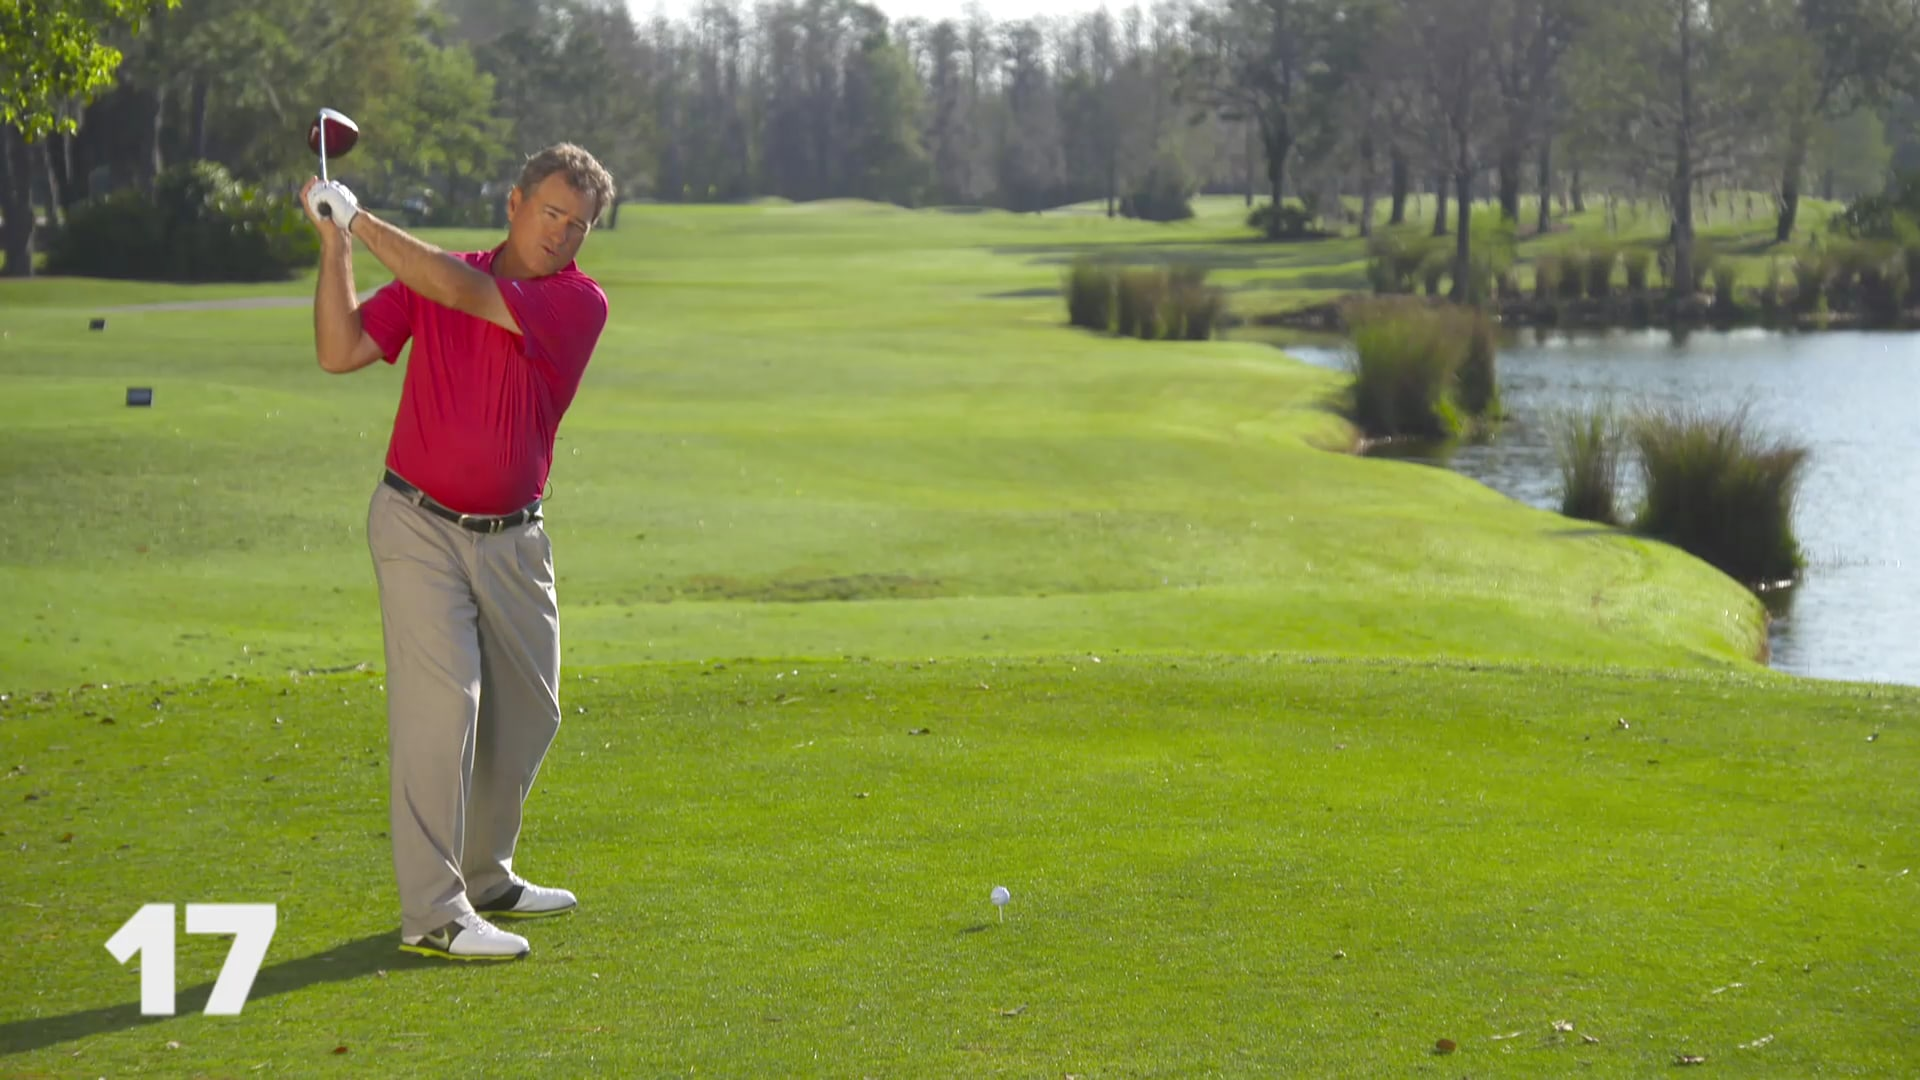 Golf For Beginners: So You Want To Play Golf - Golf Digest